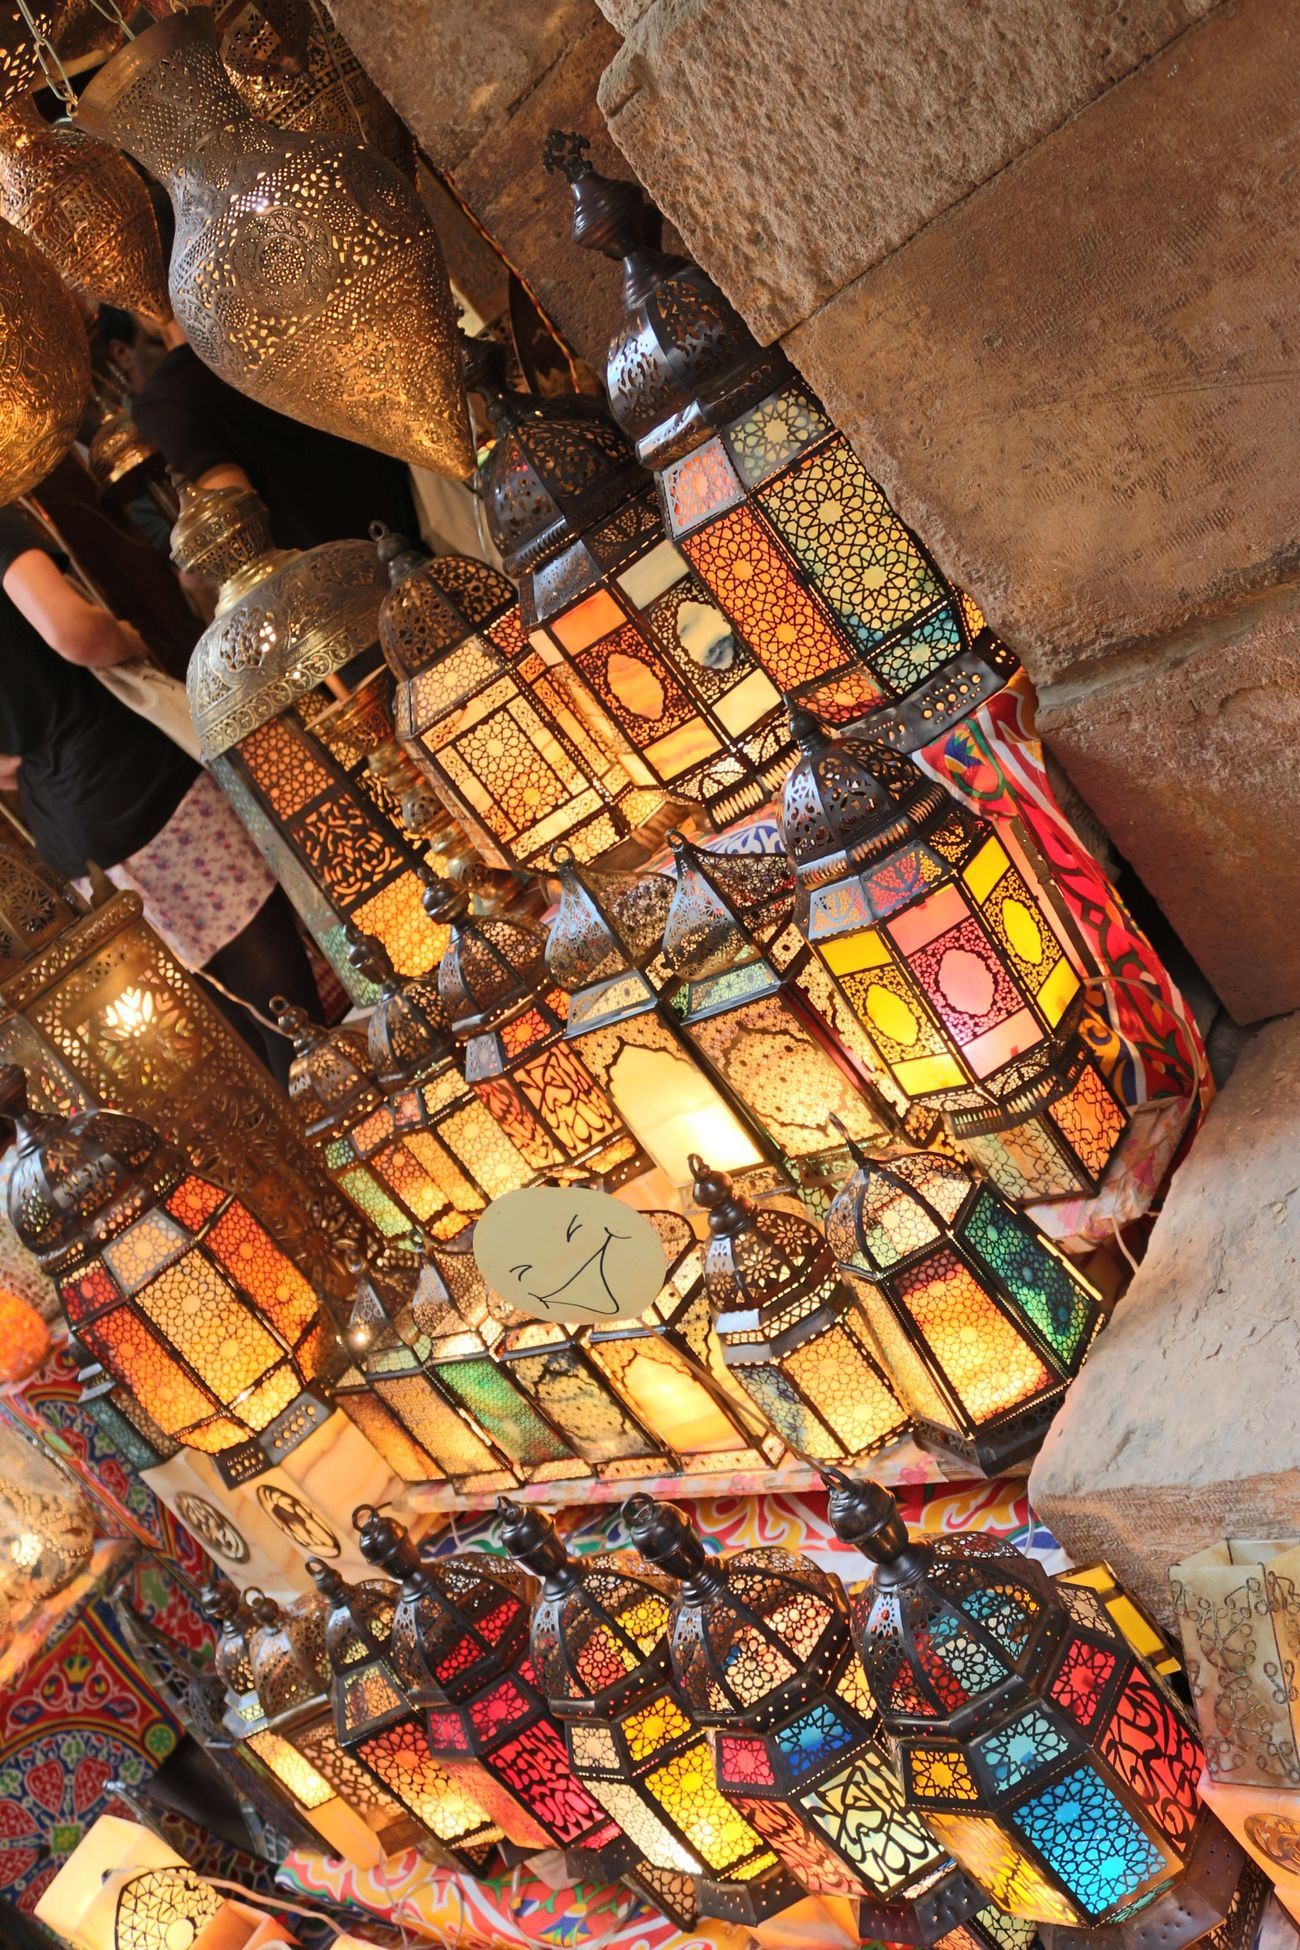 Thisisegypt Khanelkhalili Lamps And Lights. Lamps